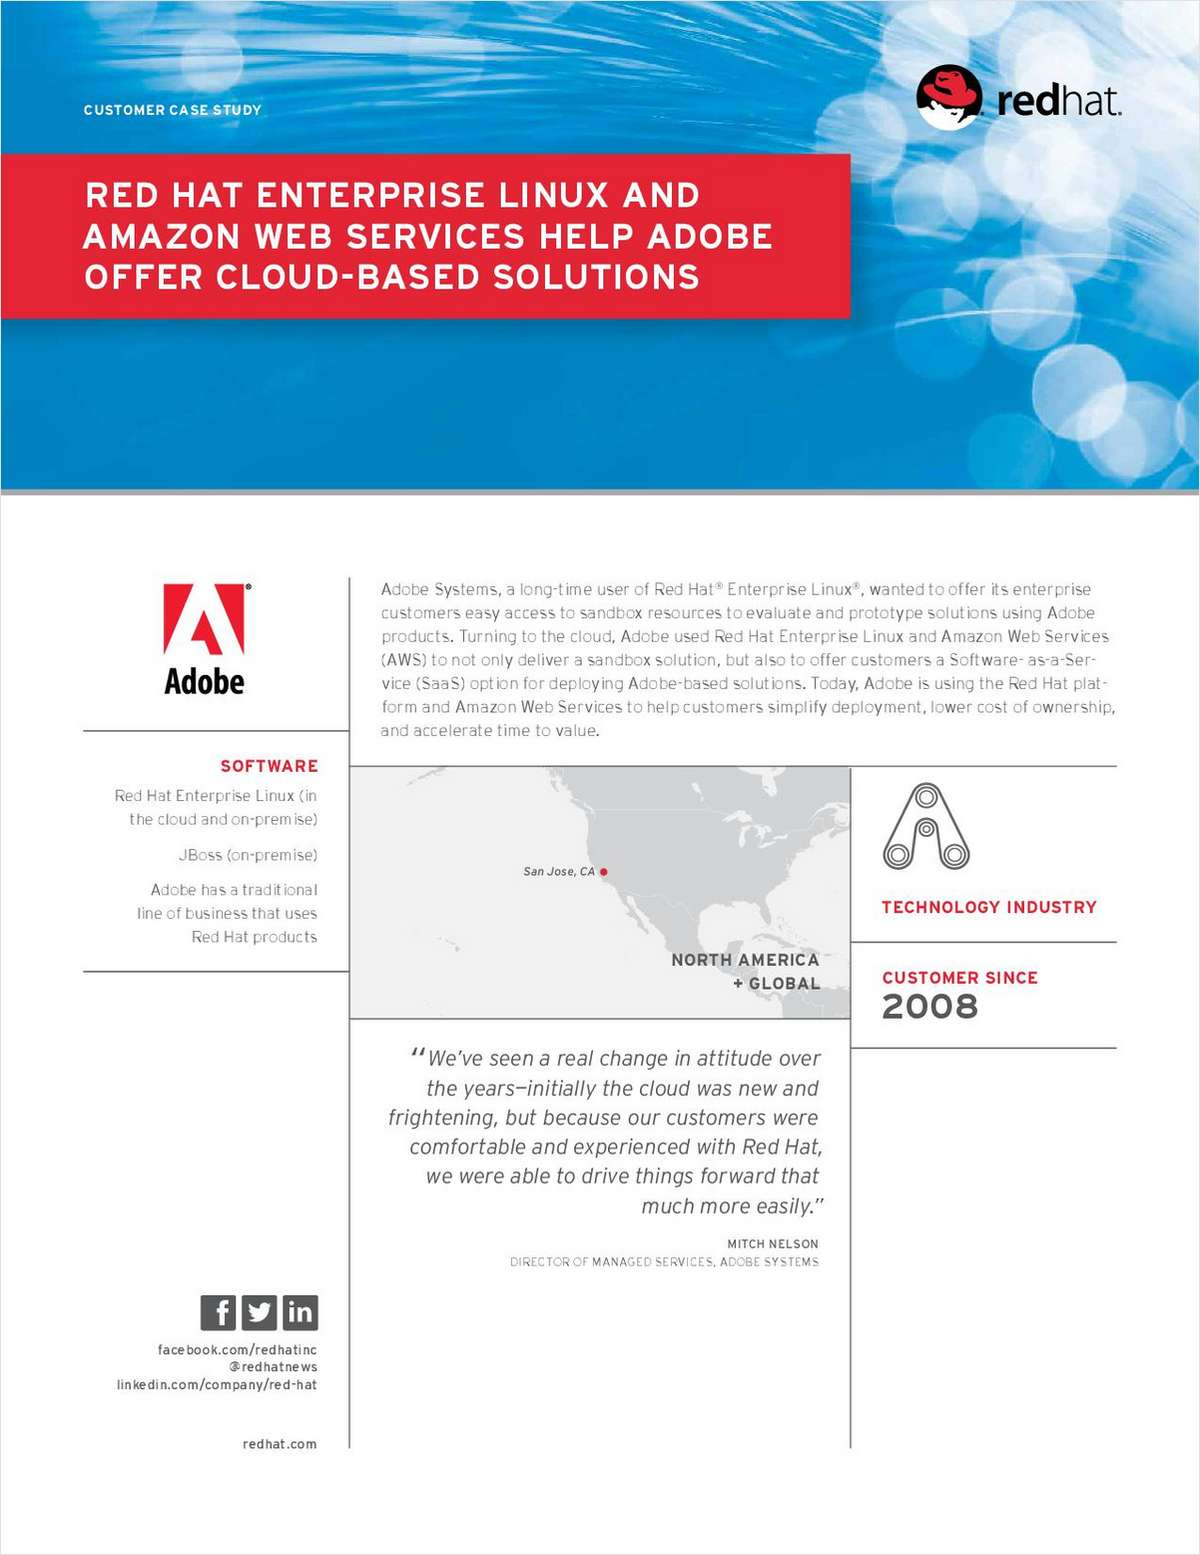 Red Hat Enterprise Linux and Amazon Web Services Help Adobe